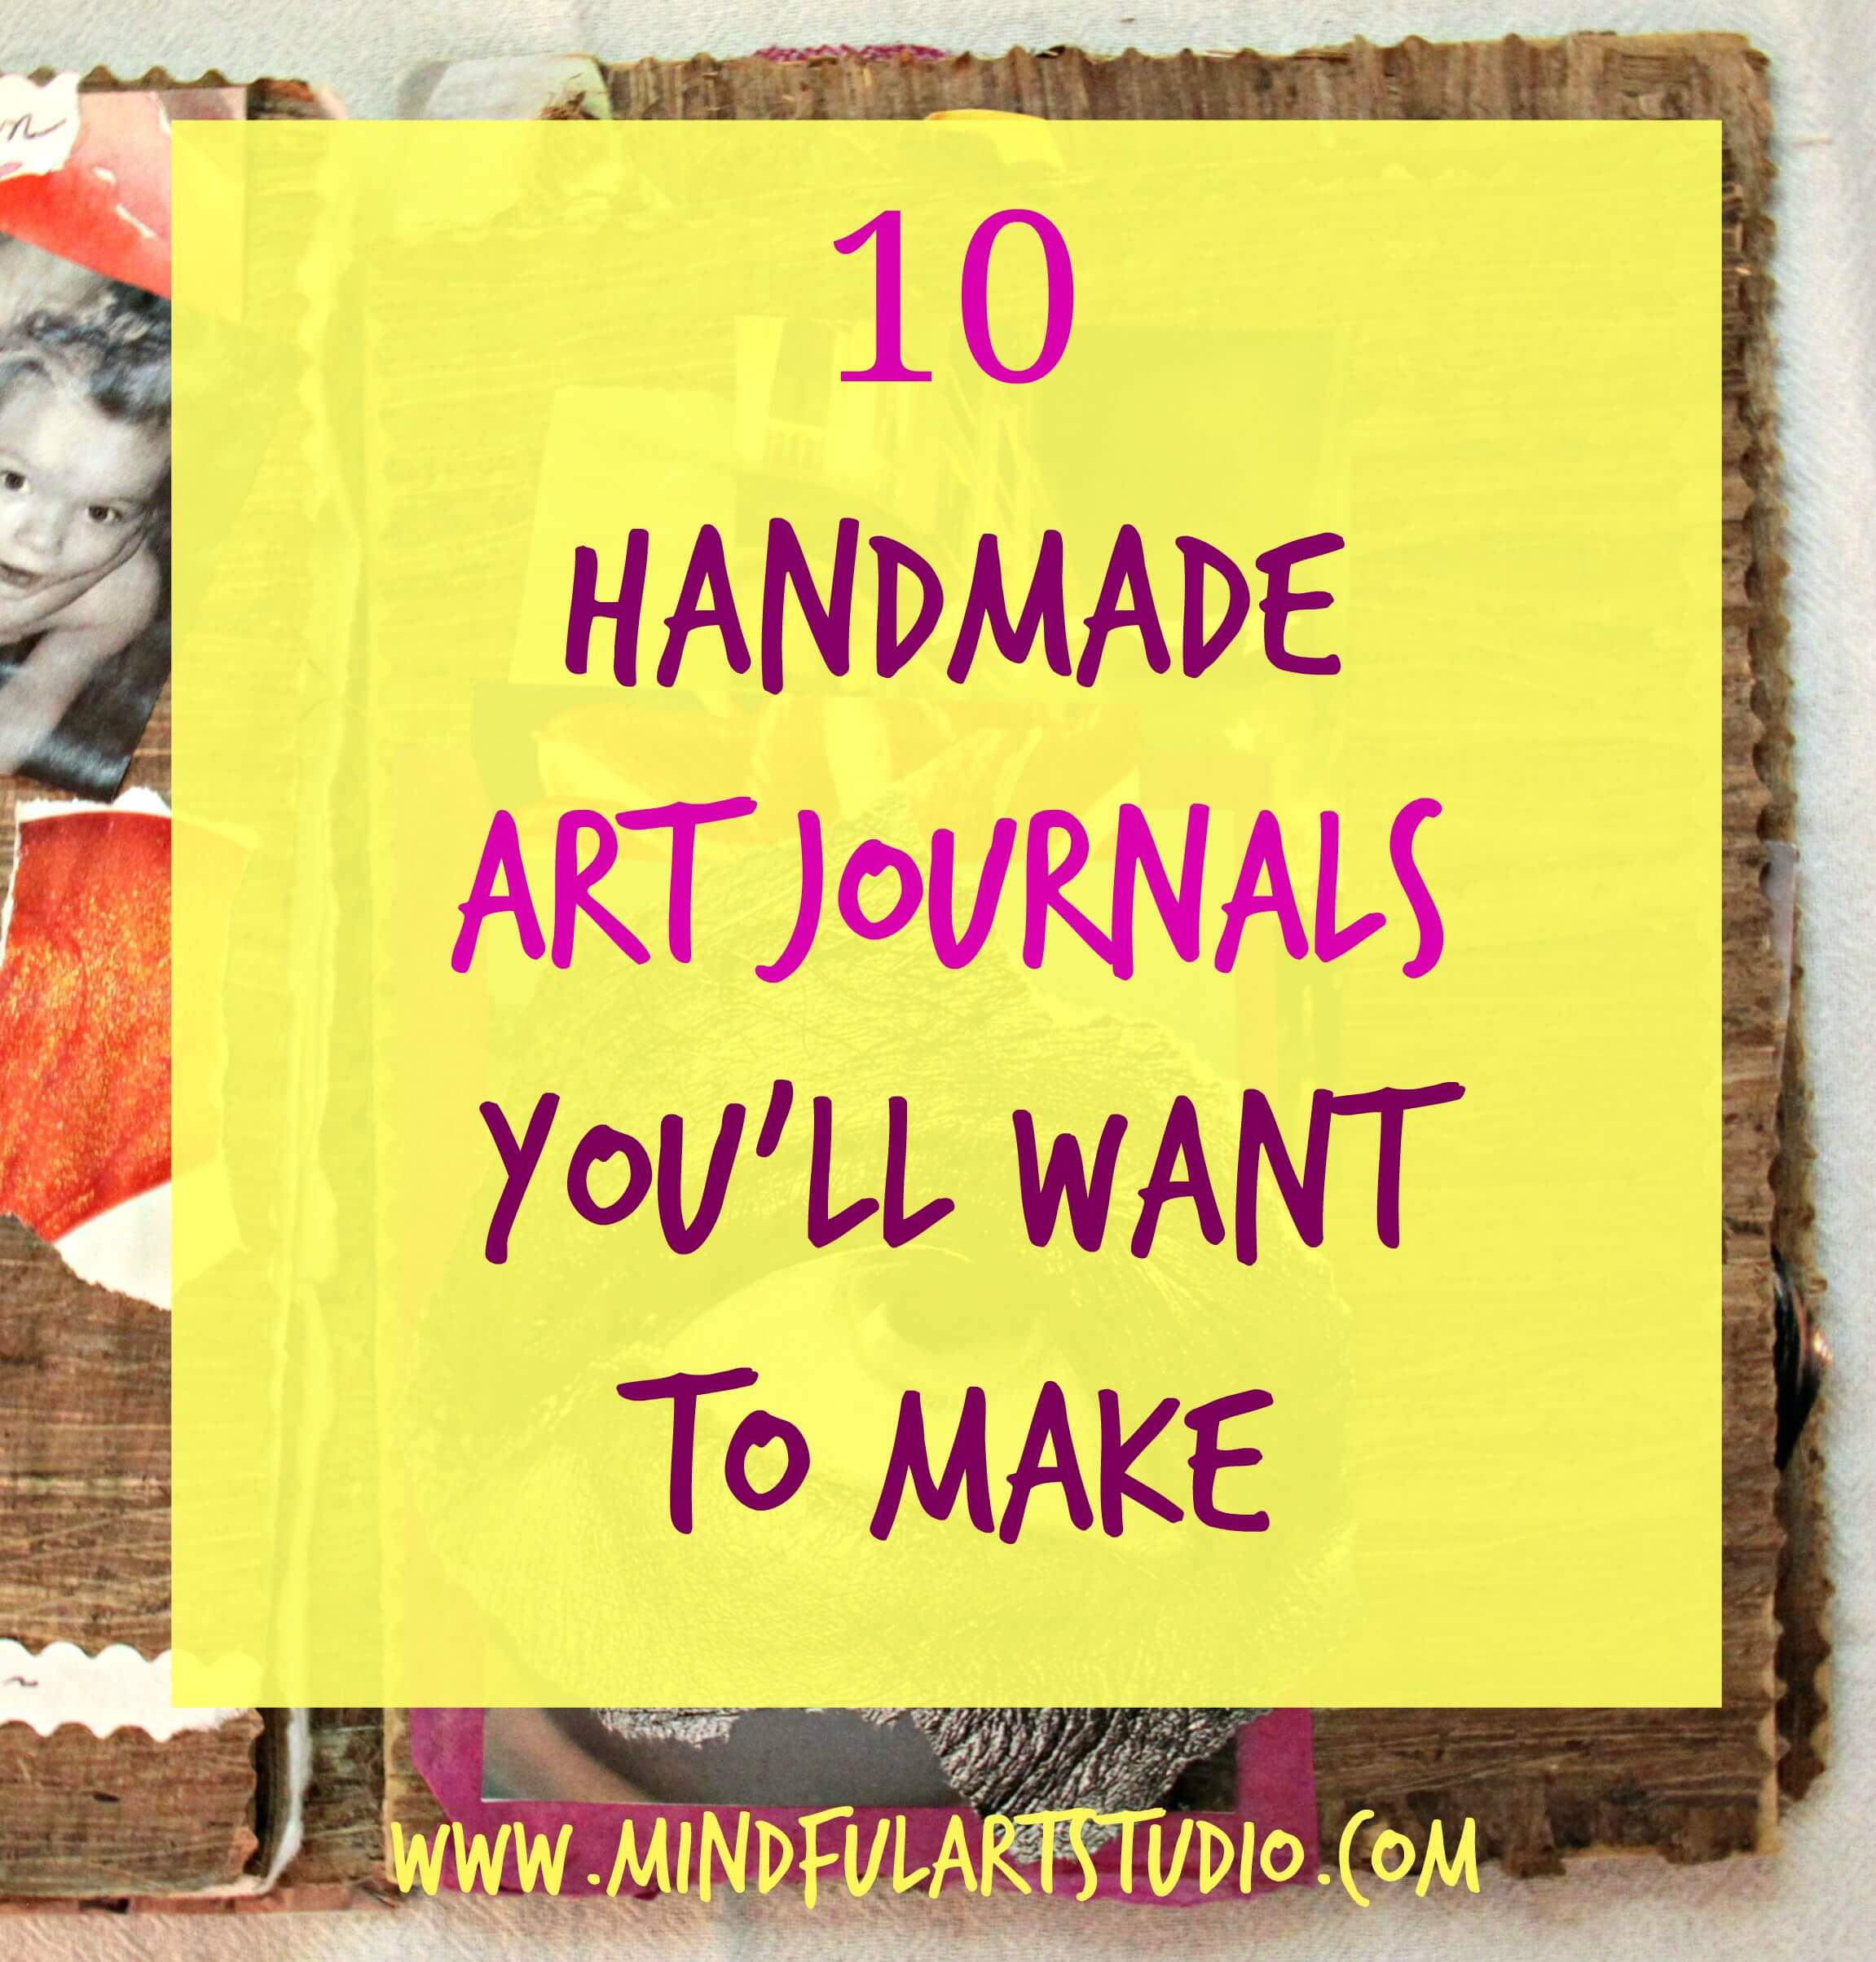 10 Handmade Art Journals You'll Want to Make